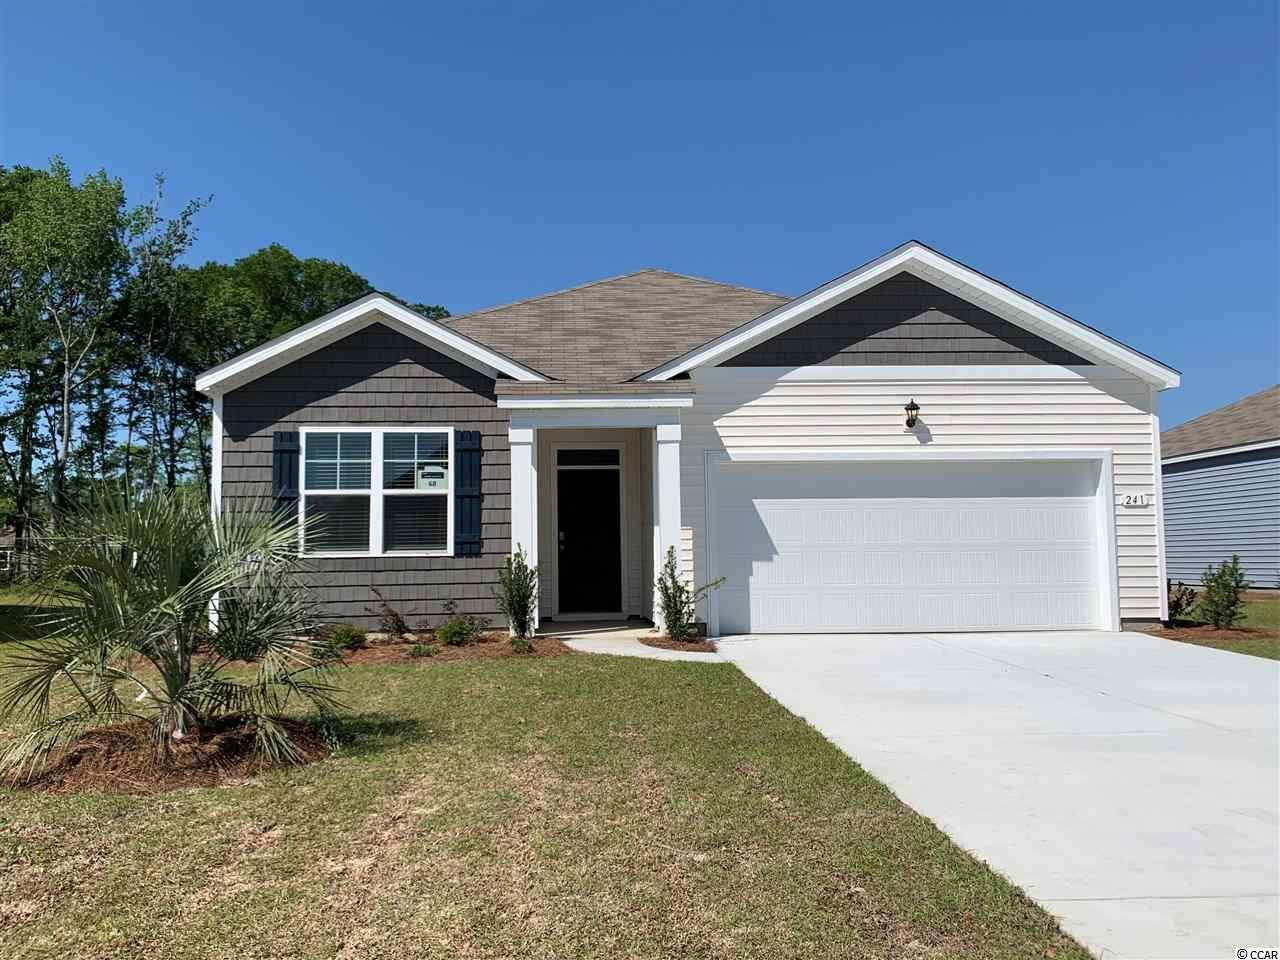 241 Forestbrook Cove Circle - Photo 1